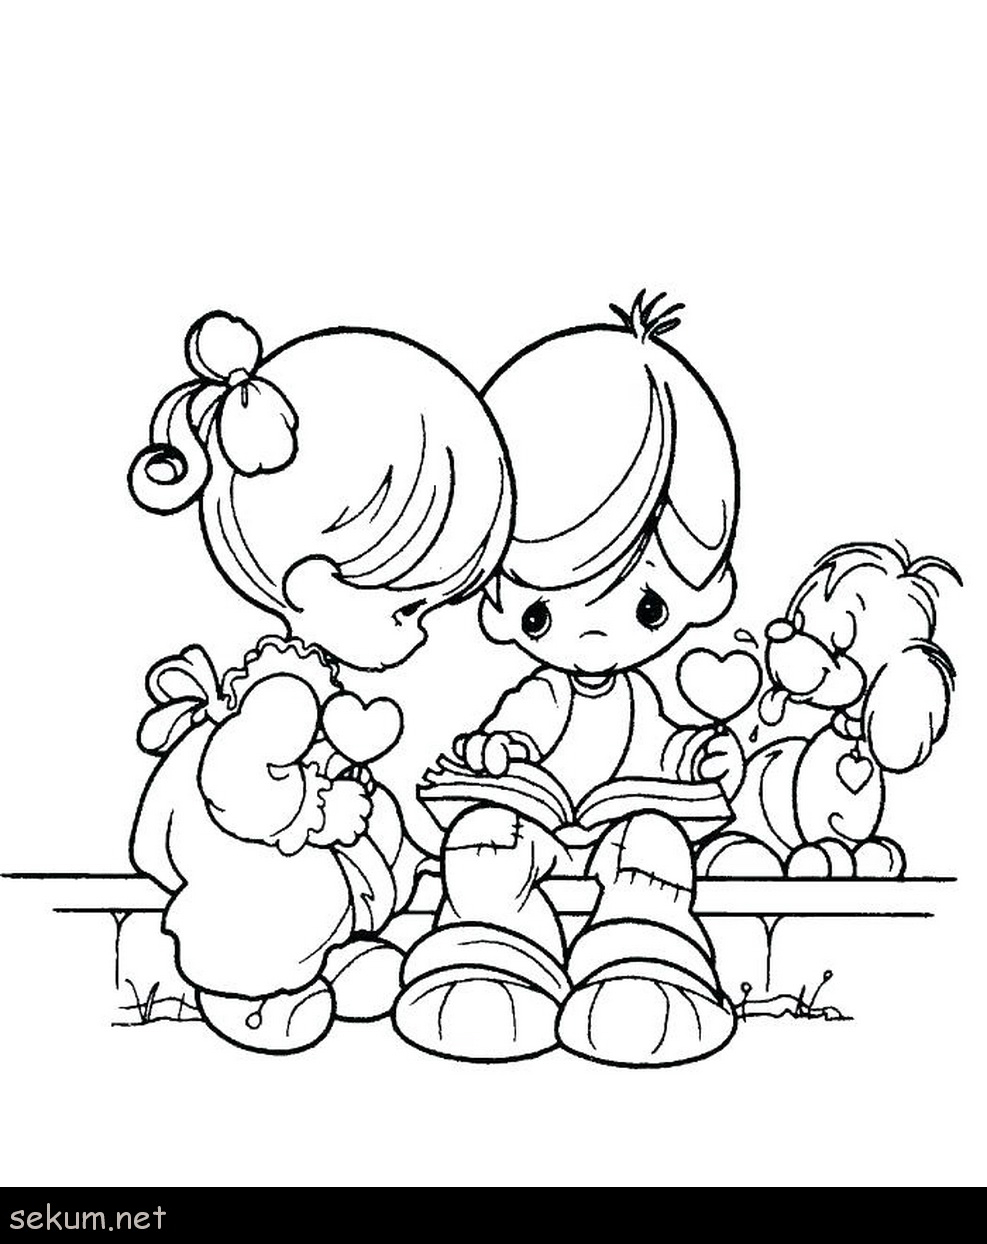 Precious Moments Letters Coloring Pages Precious Moments Ba Coloring Pages Precious Moments Ba Coloring